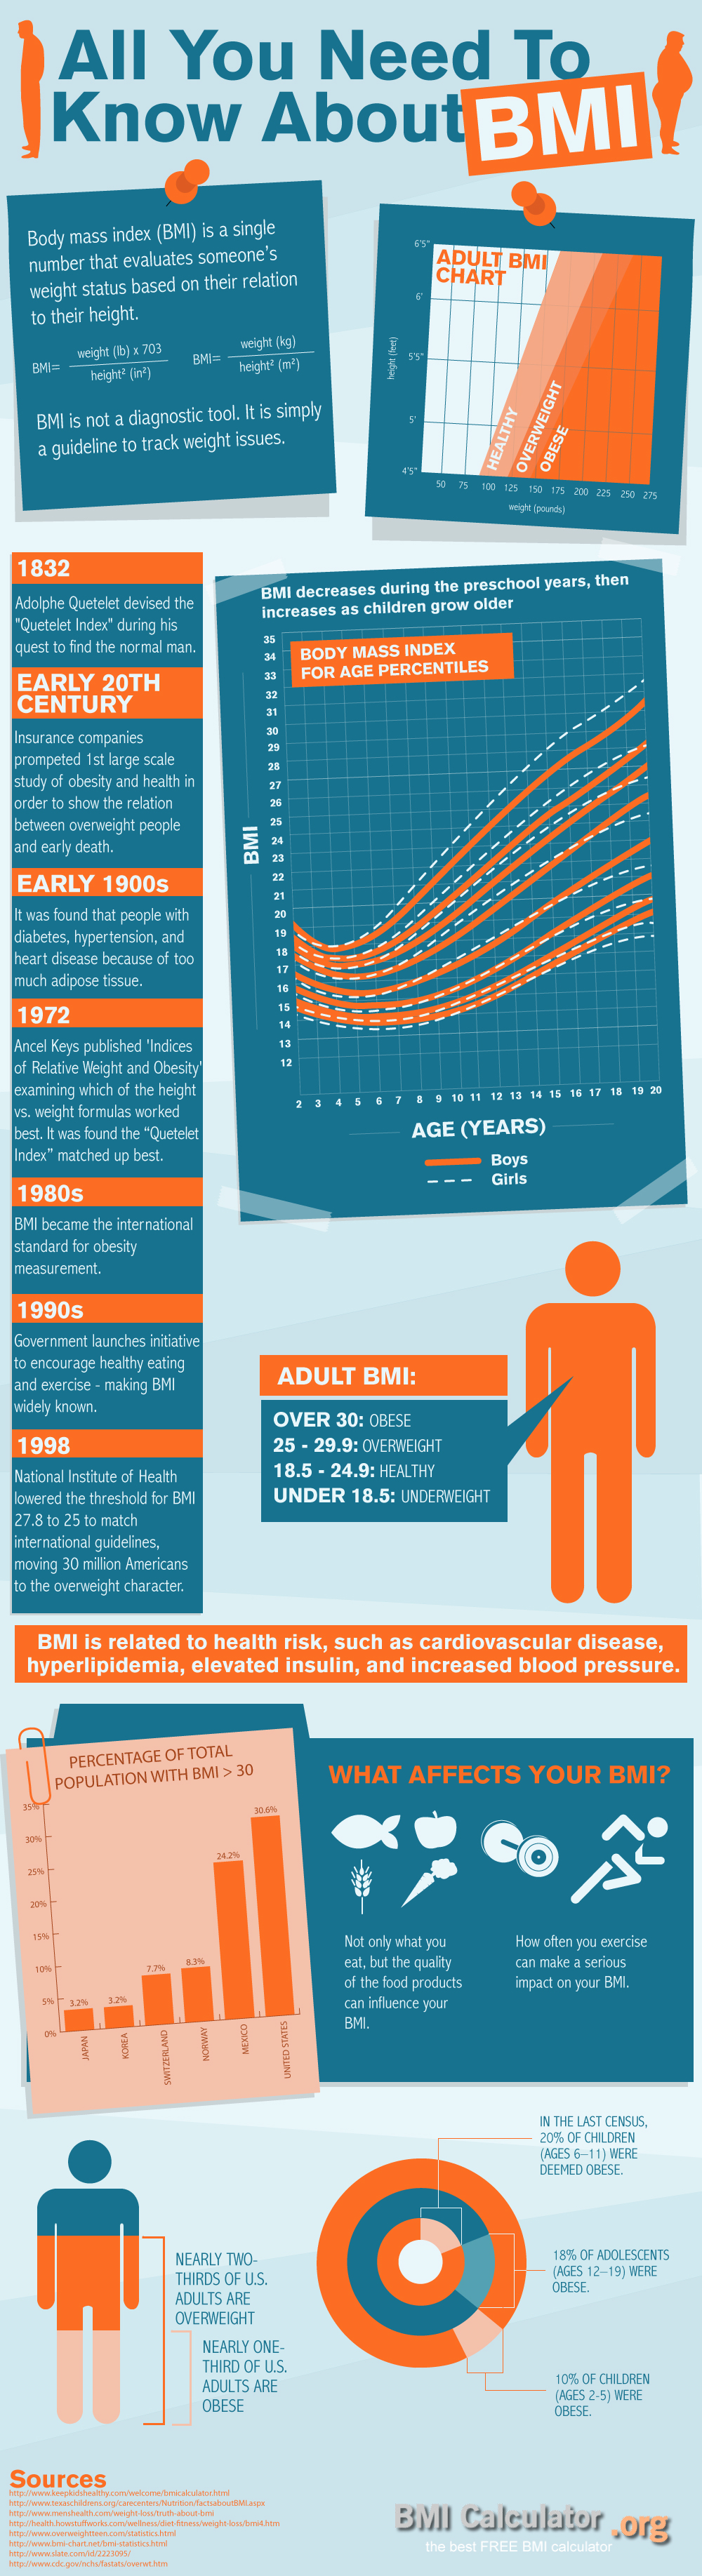 All you need to know about BMI